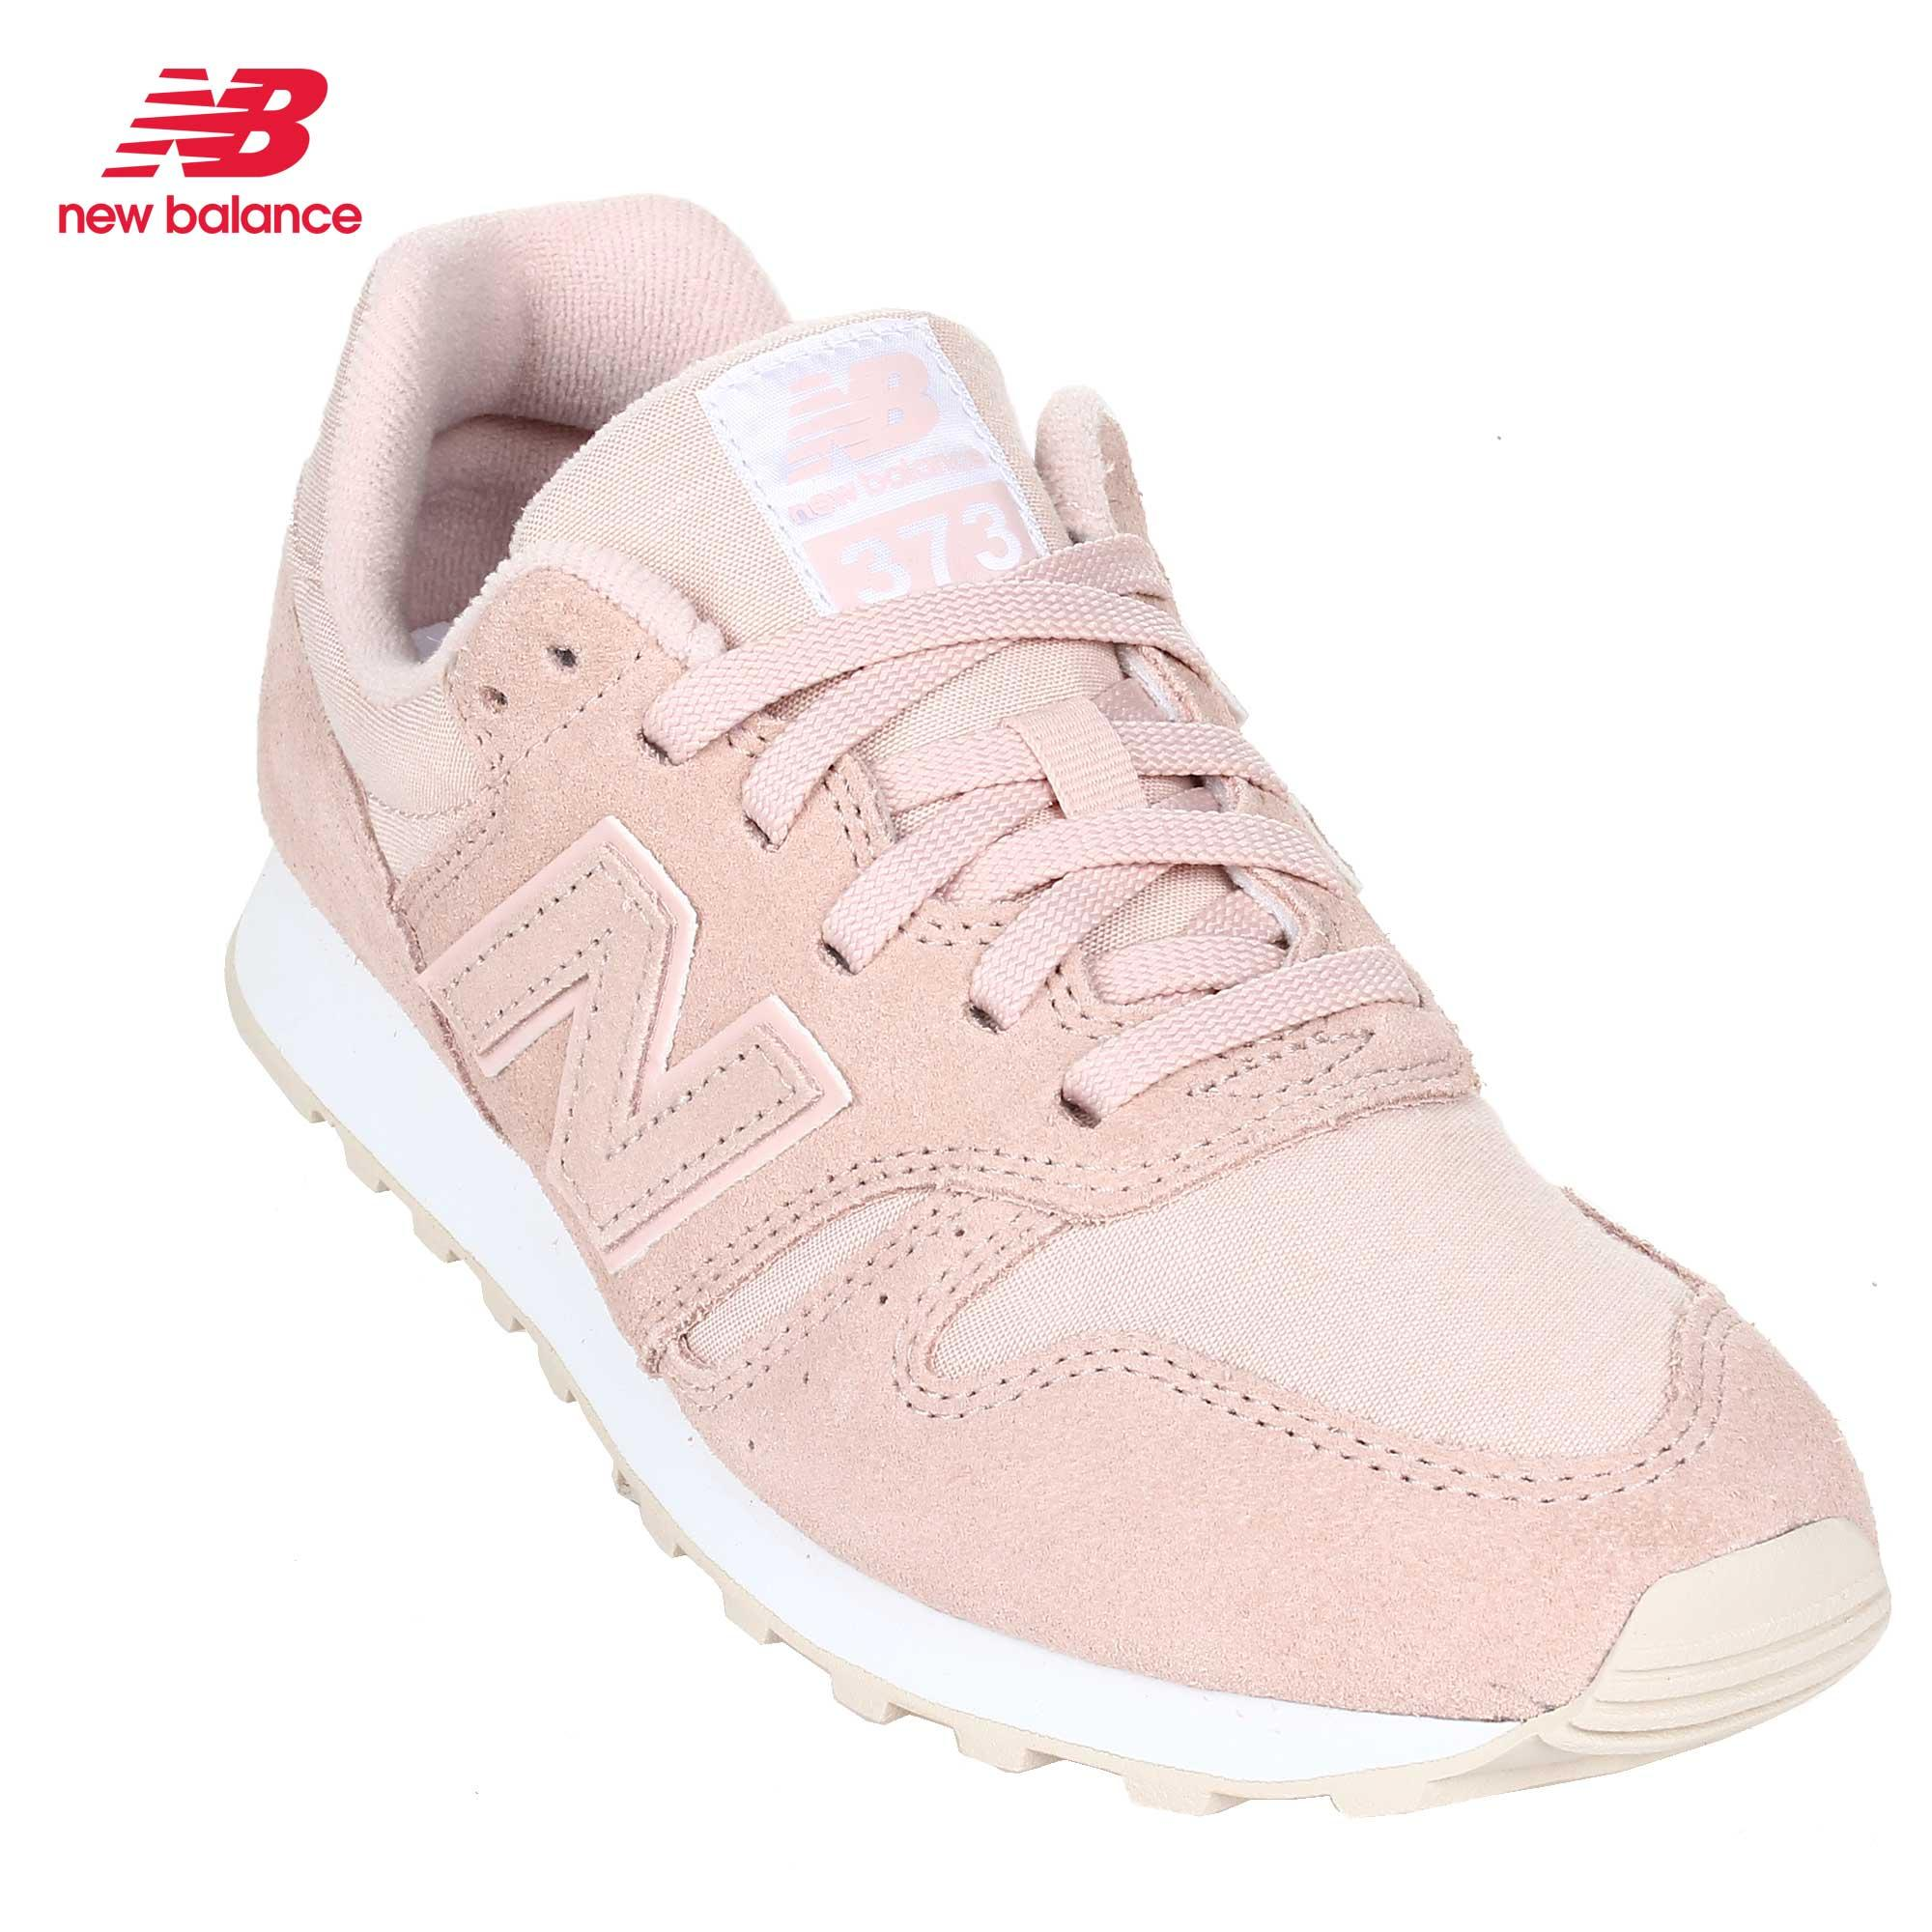 e562ee3461159 New Balance Philippines - New Balance Fashion Clothes for Women for ...